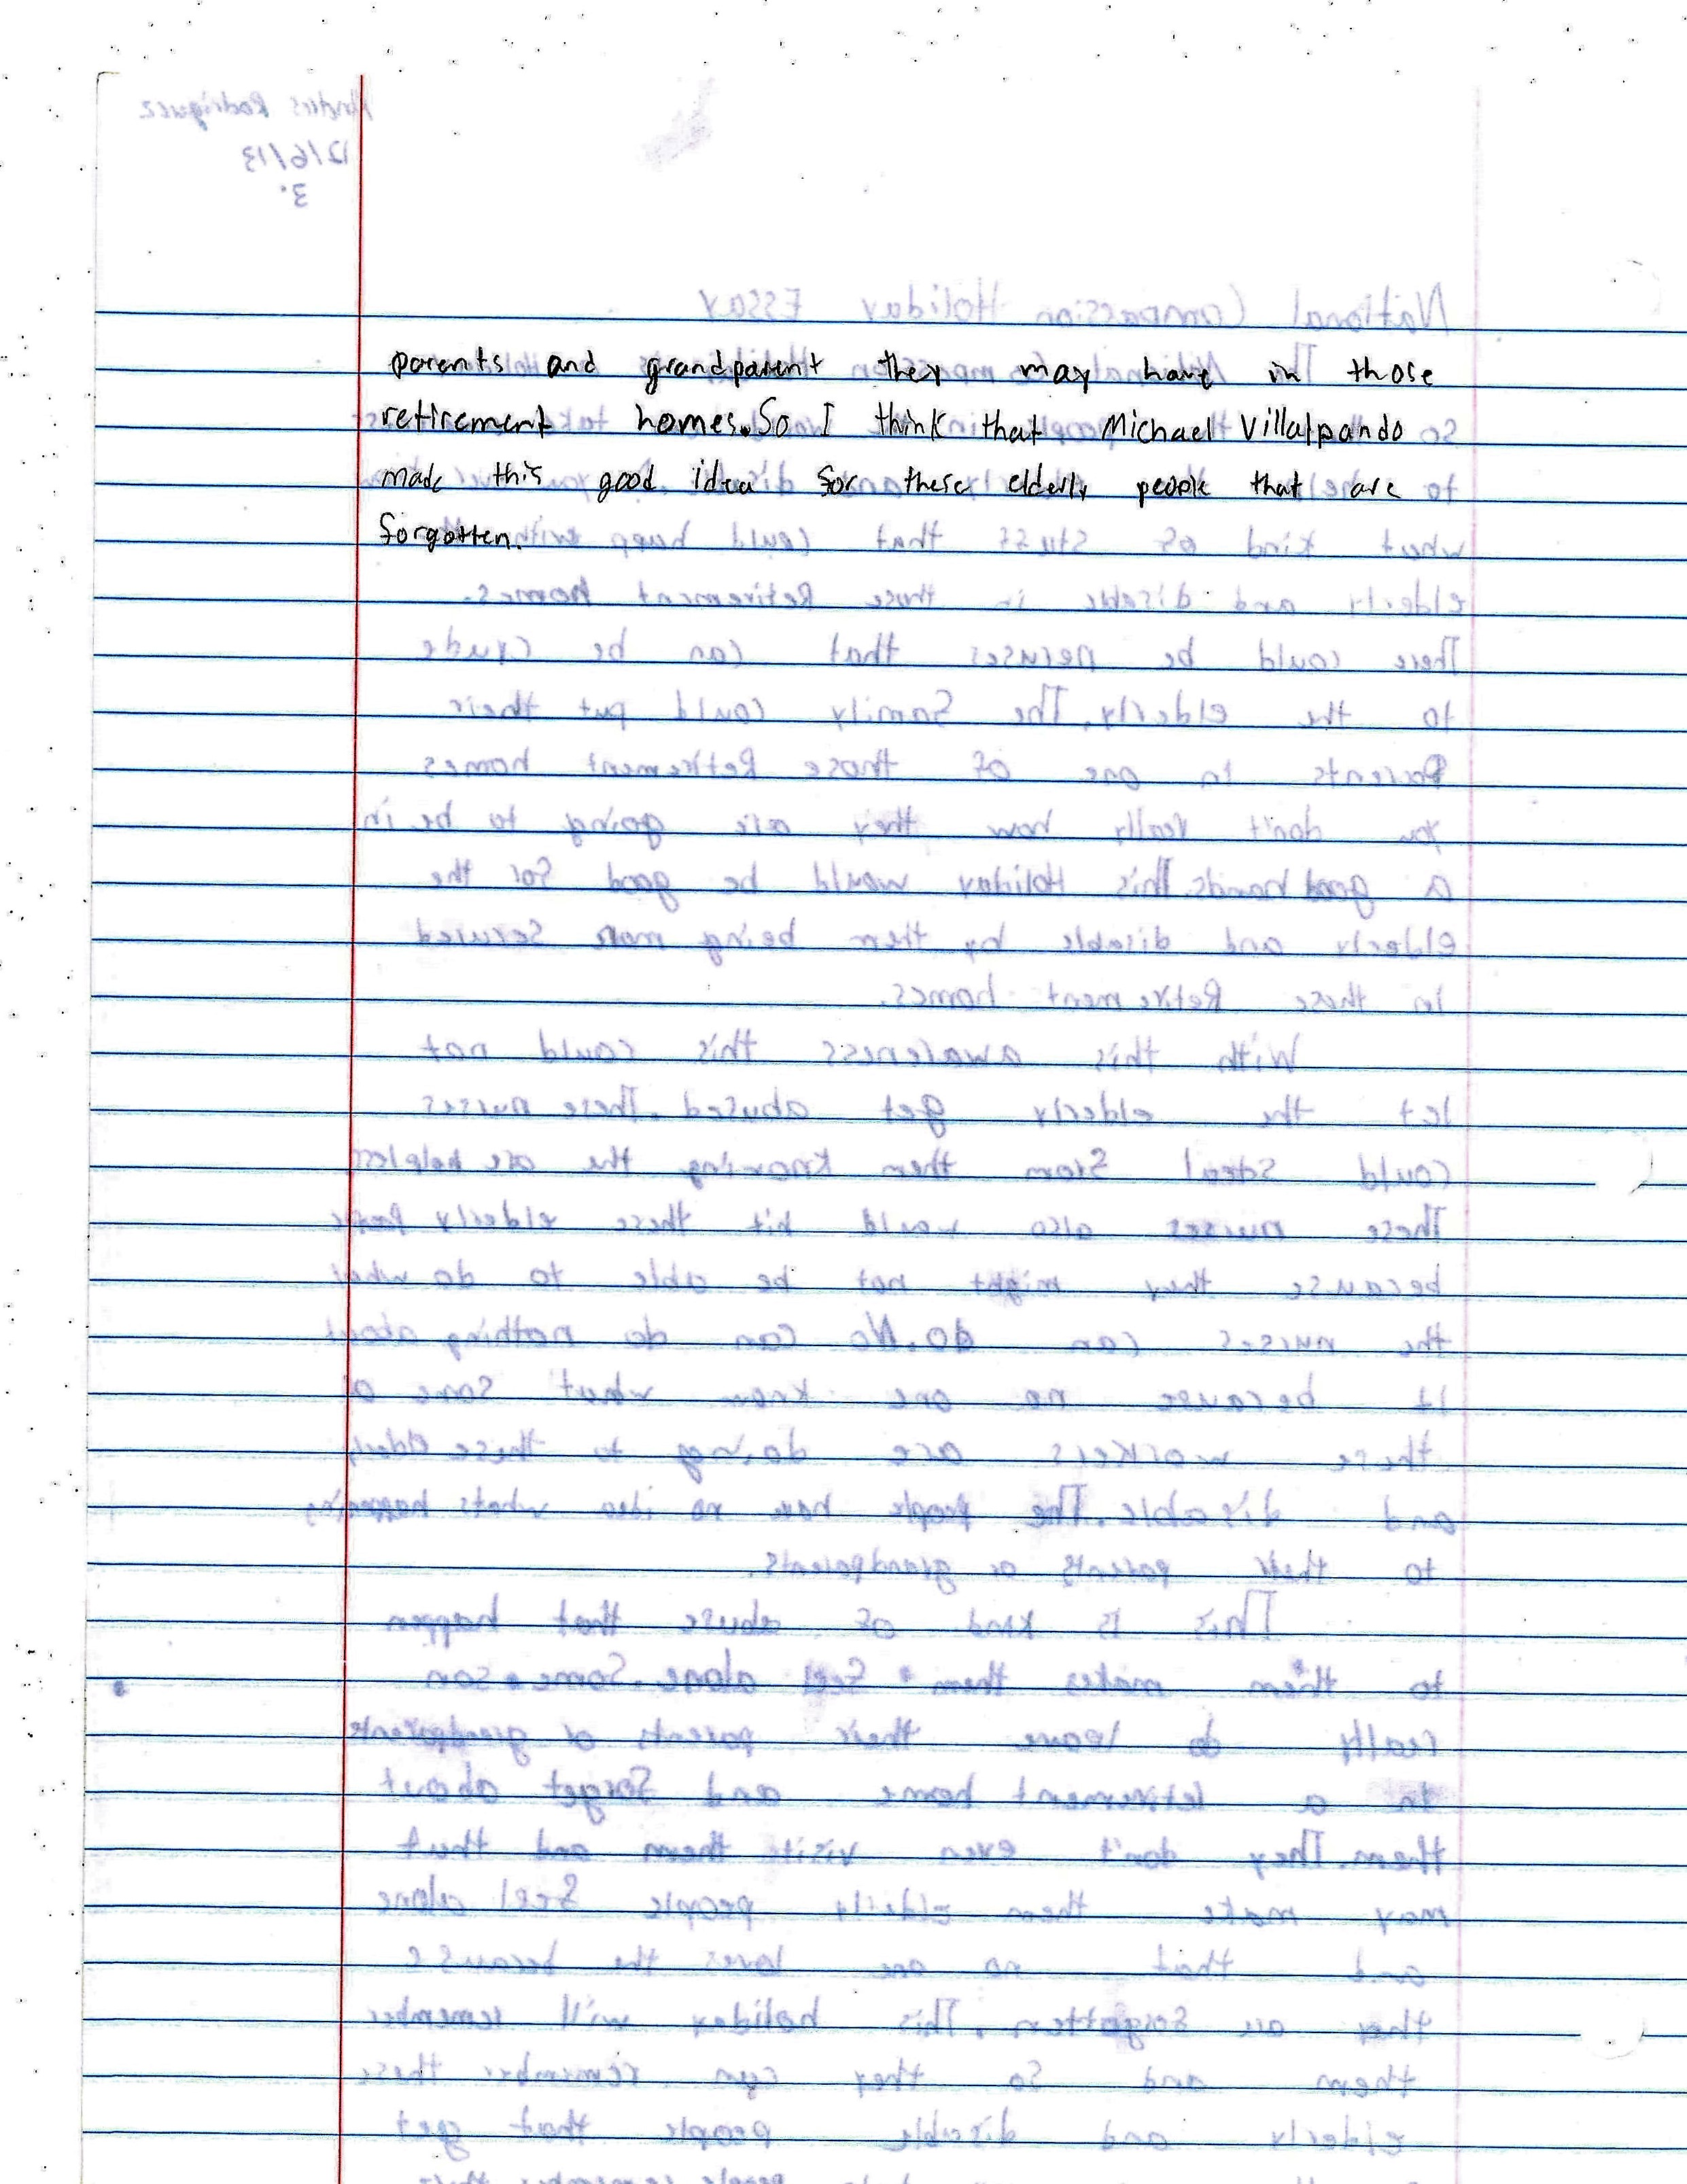 Sample Essay For High School Students Compassion Essay Conclusion How To Use A Thesis Statement In An Essay also English Essay My Best Friend Compassion Essay Conclusion Dissertation Help Examples Of Argumentative Thesis Statements For Essays